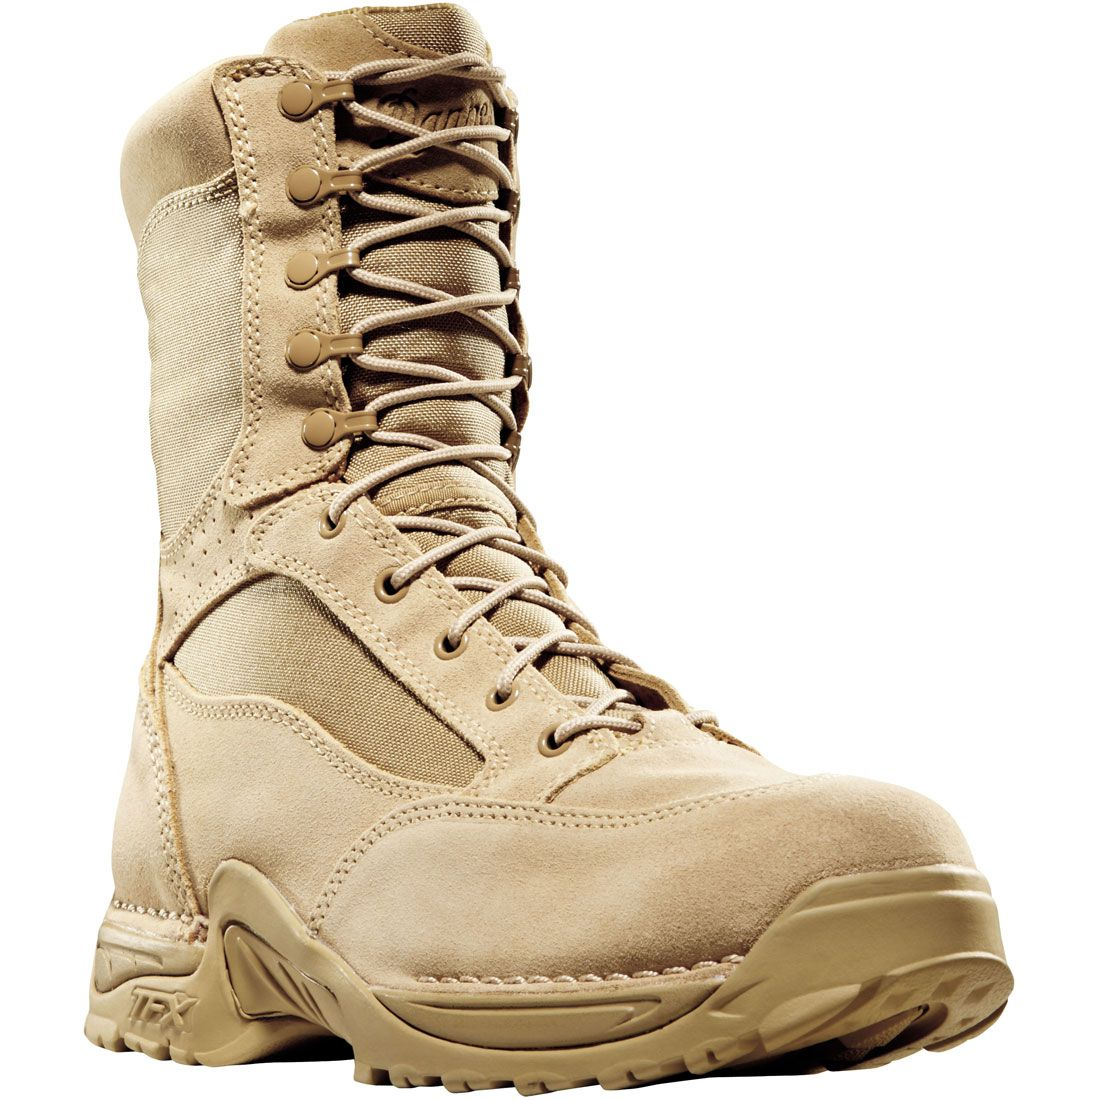 26014 Danner Men's Desert TFX Uniform Boots - Tan